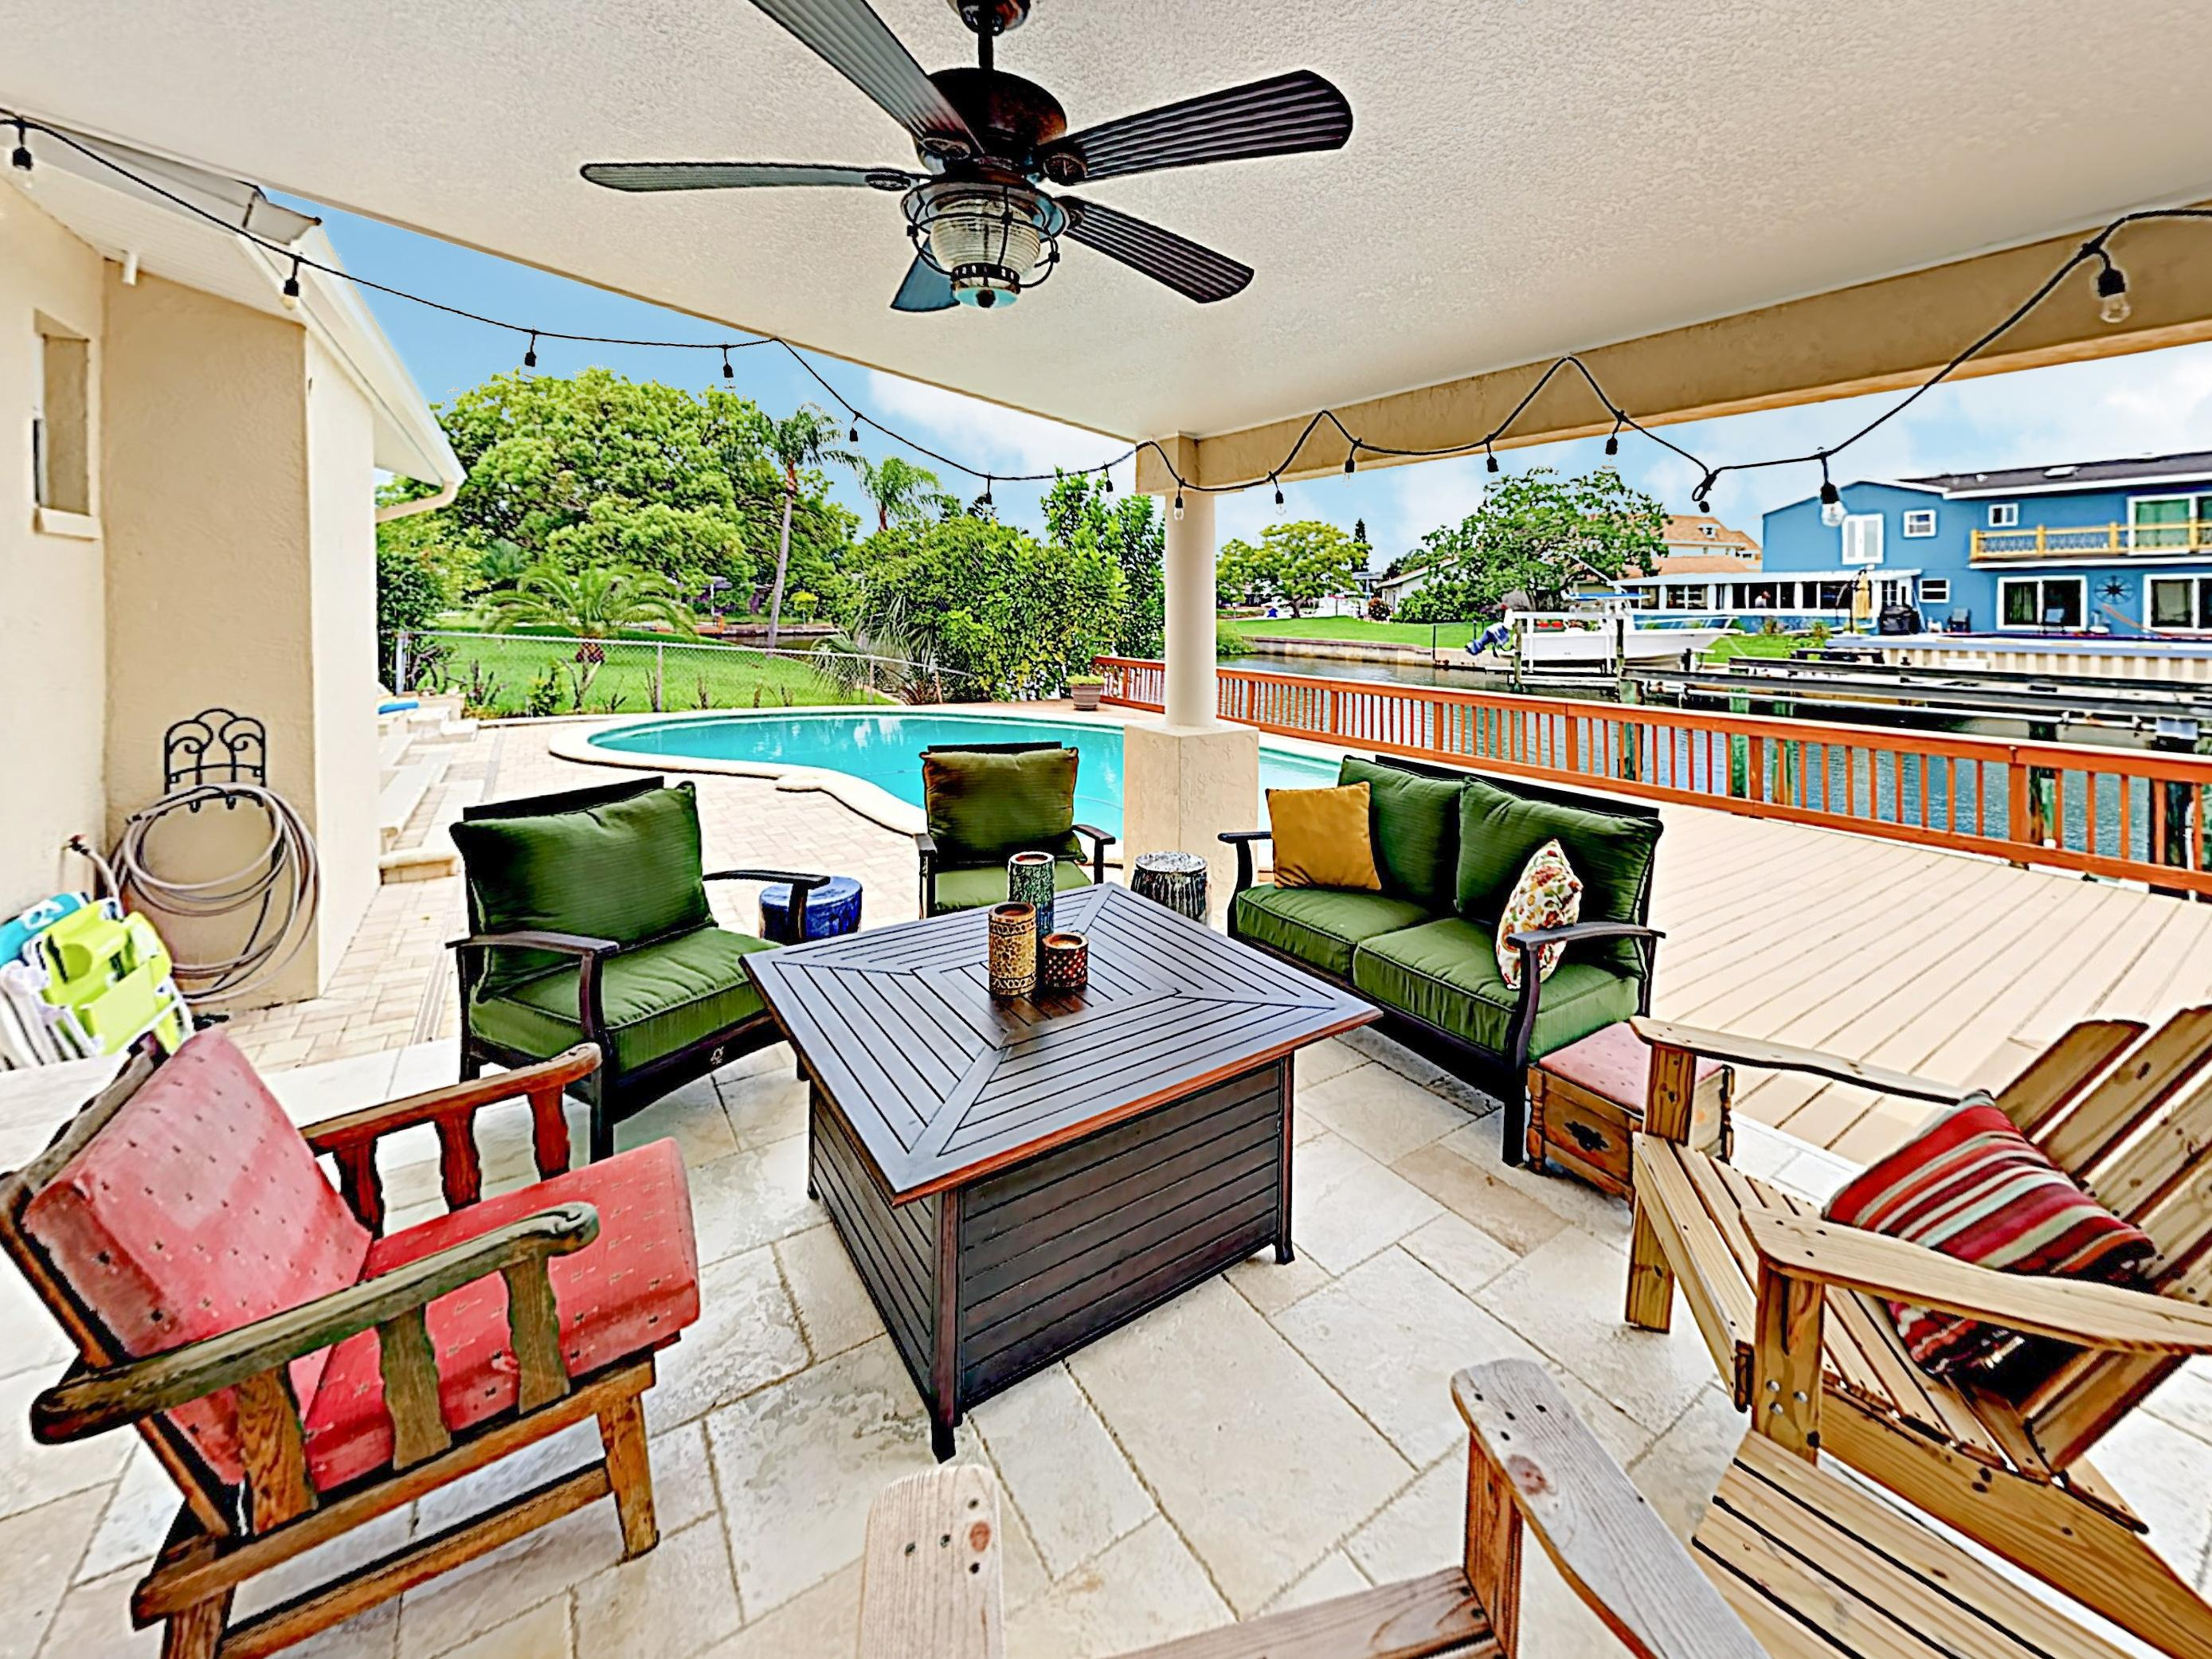 Welcome to Tampa! This home is professionally managed by TurnKey Vacation Rentals.